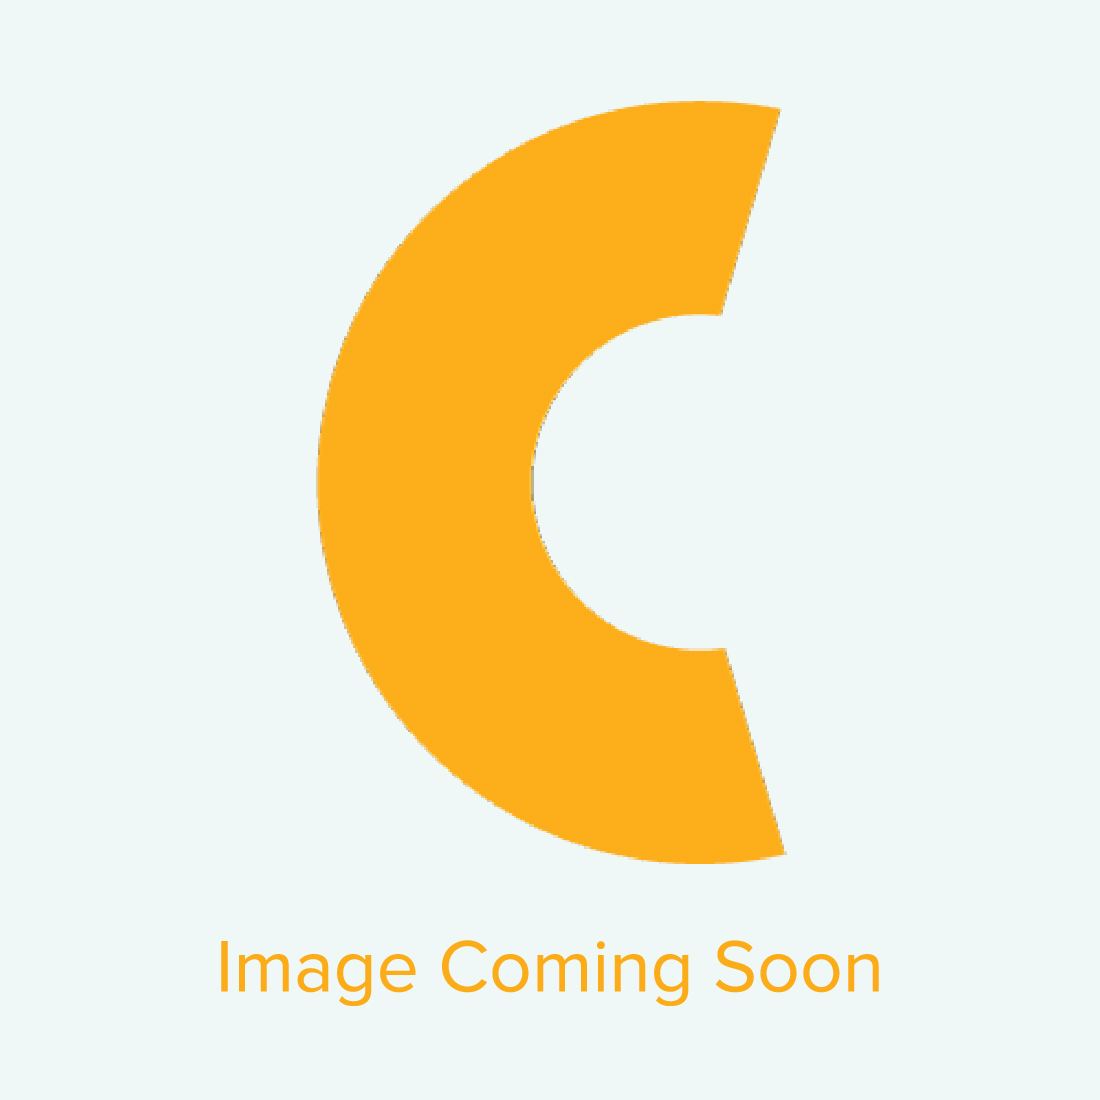 "Siser EasyWeed Heat Transfer Vinyl - 12"" x 10 yards"